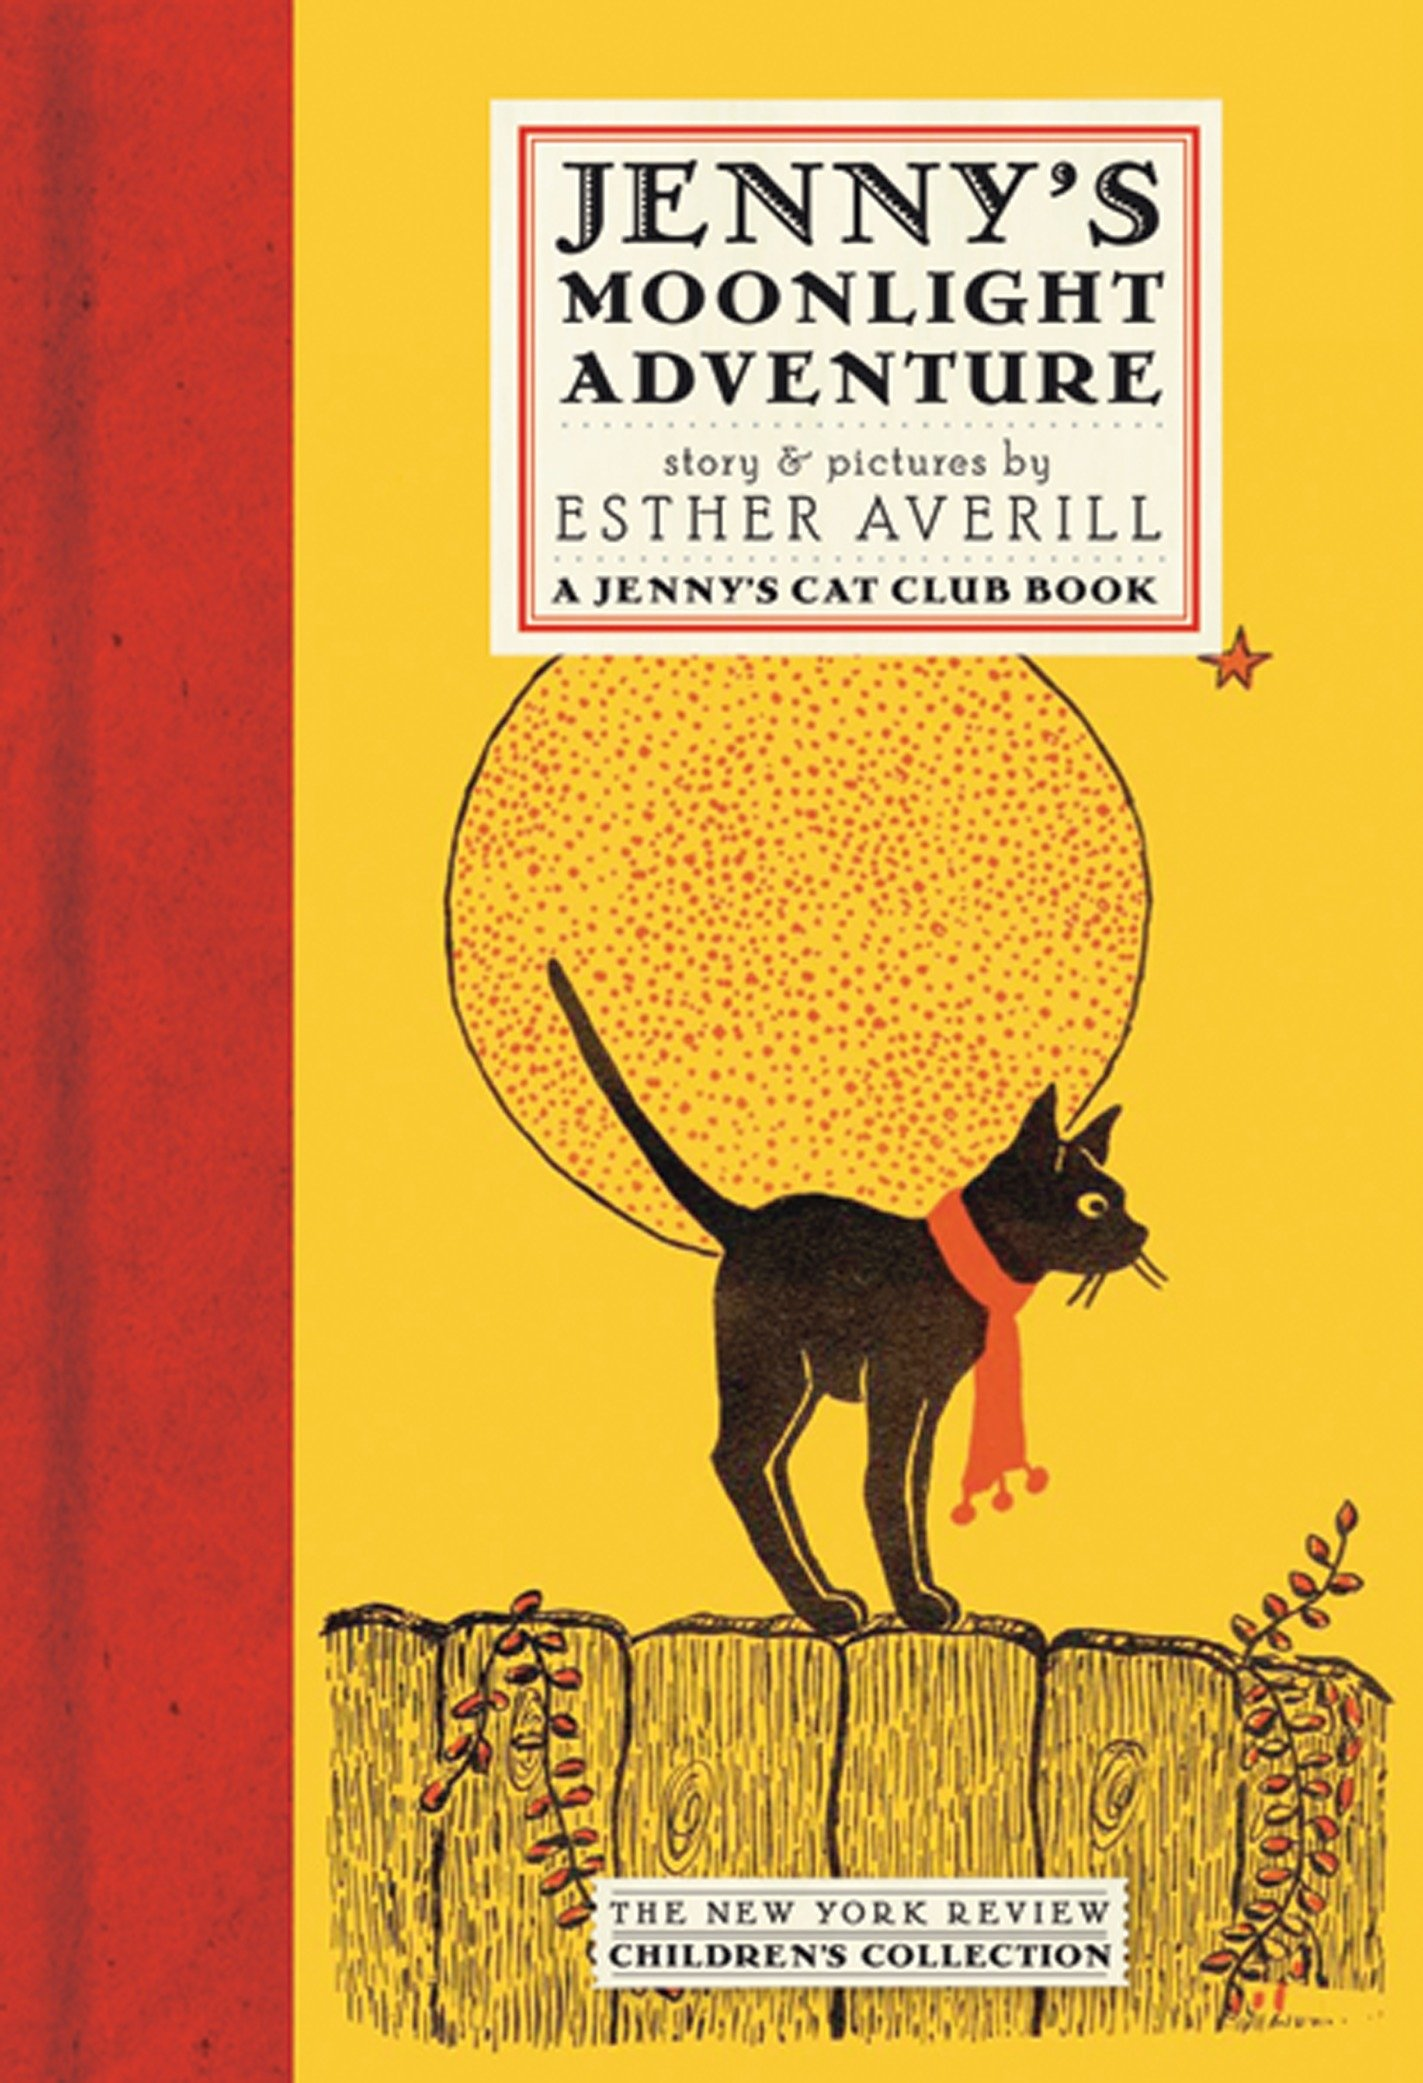 Jenny's Moonlight Adventure (Jenny's Cat Club) by NYR Children's Collection (Image #2)